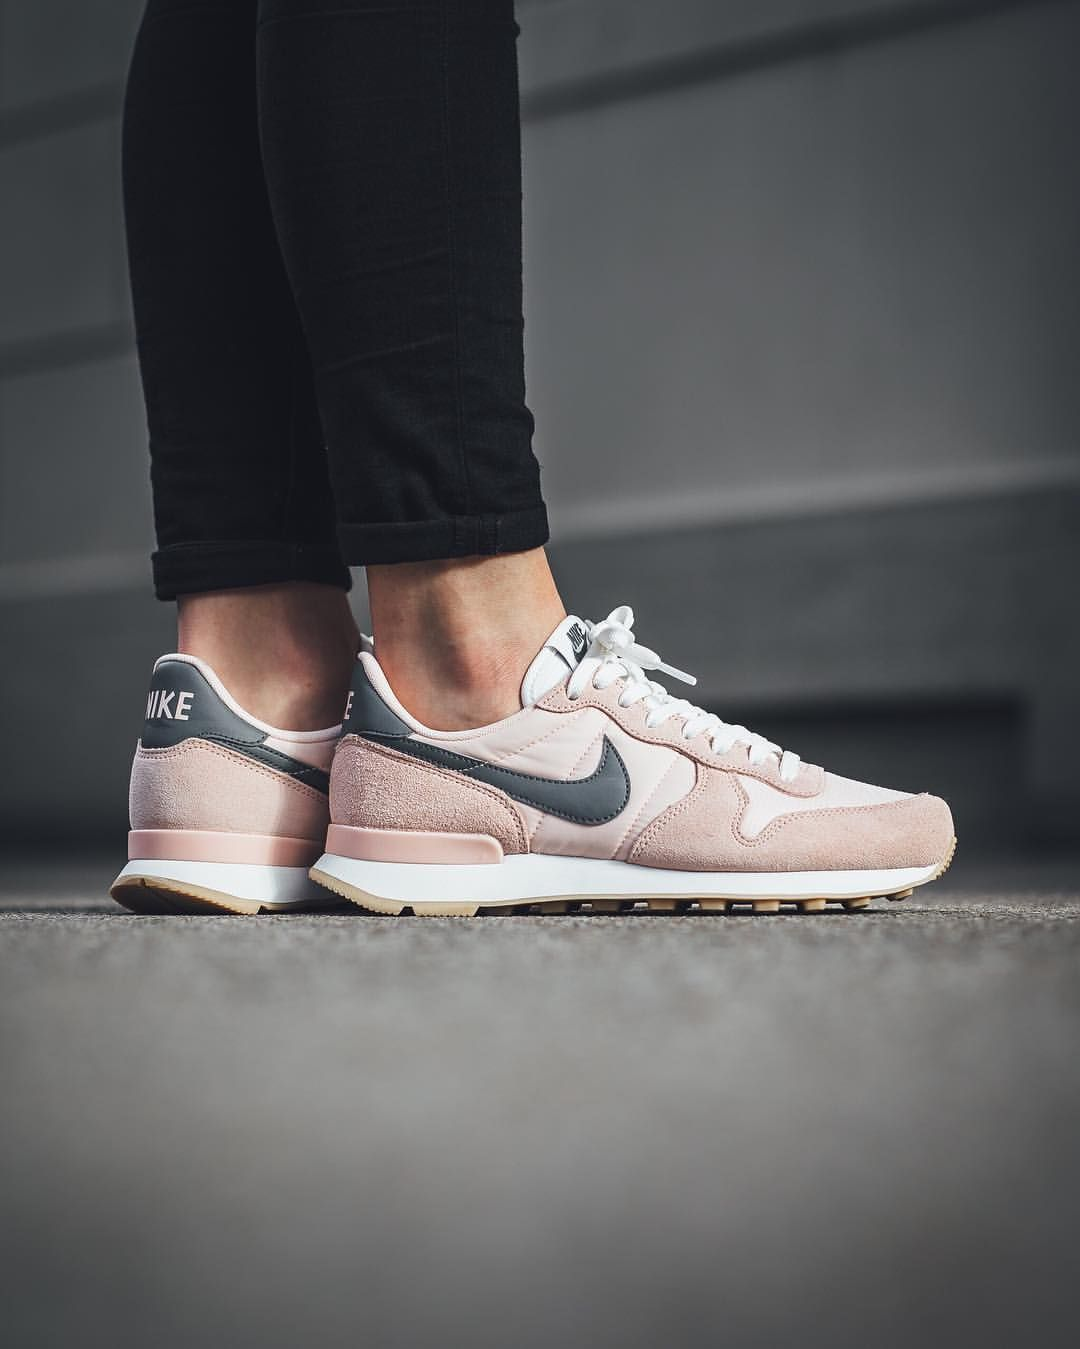 Fashionn Shoes $19 on (With images) | Nike shoes women, Nike